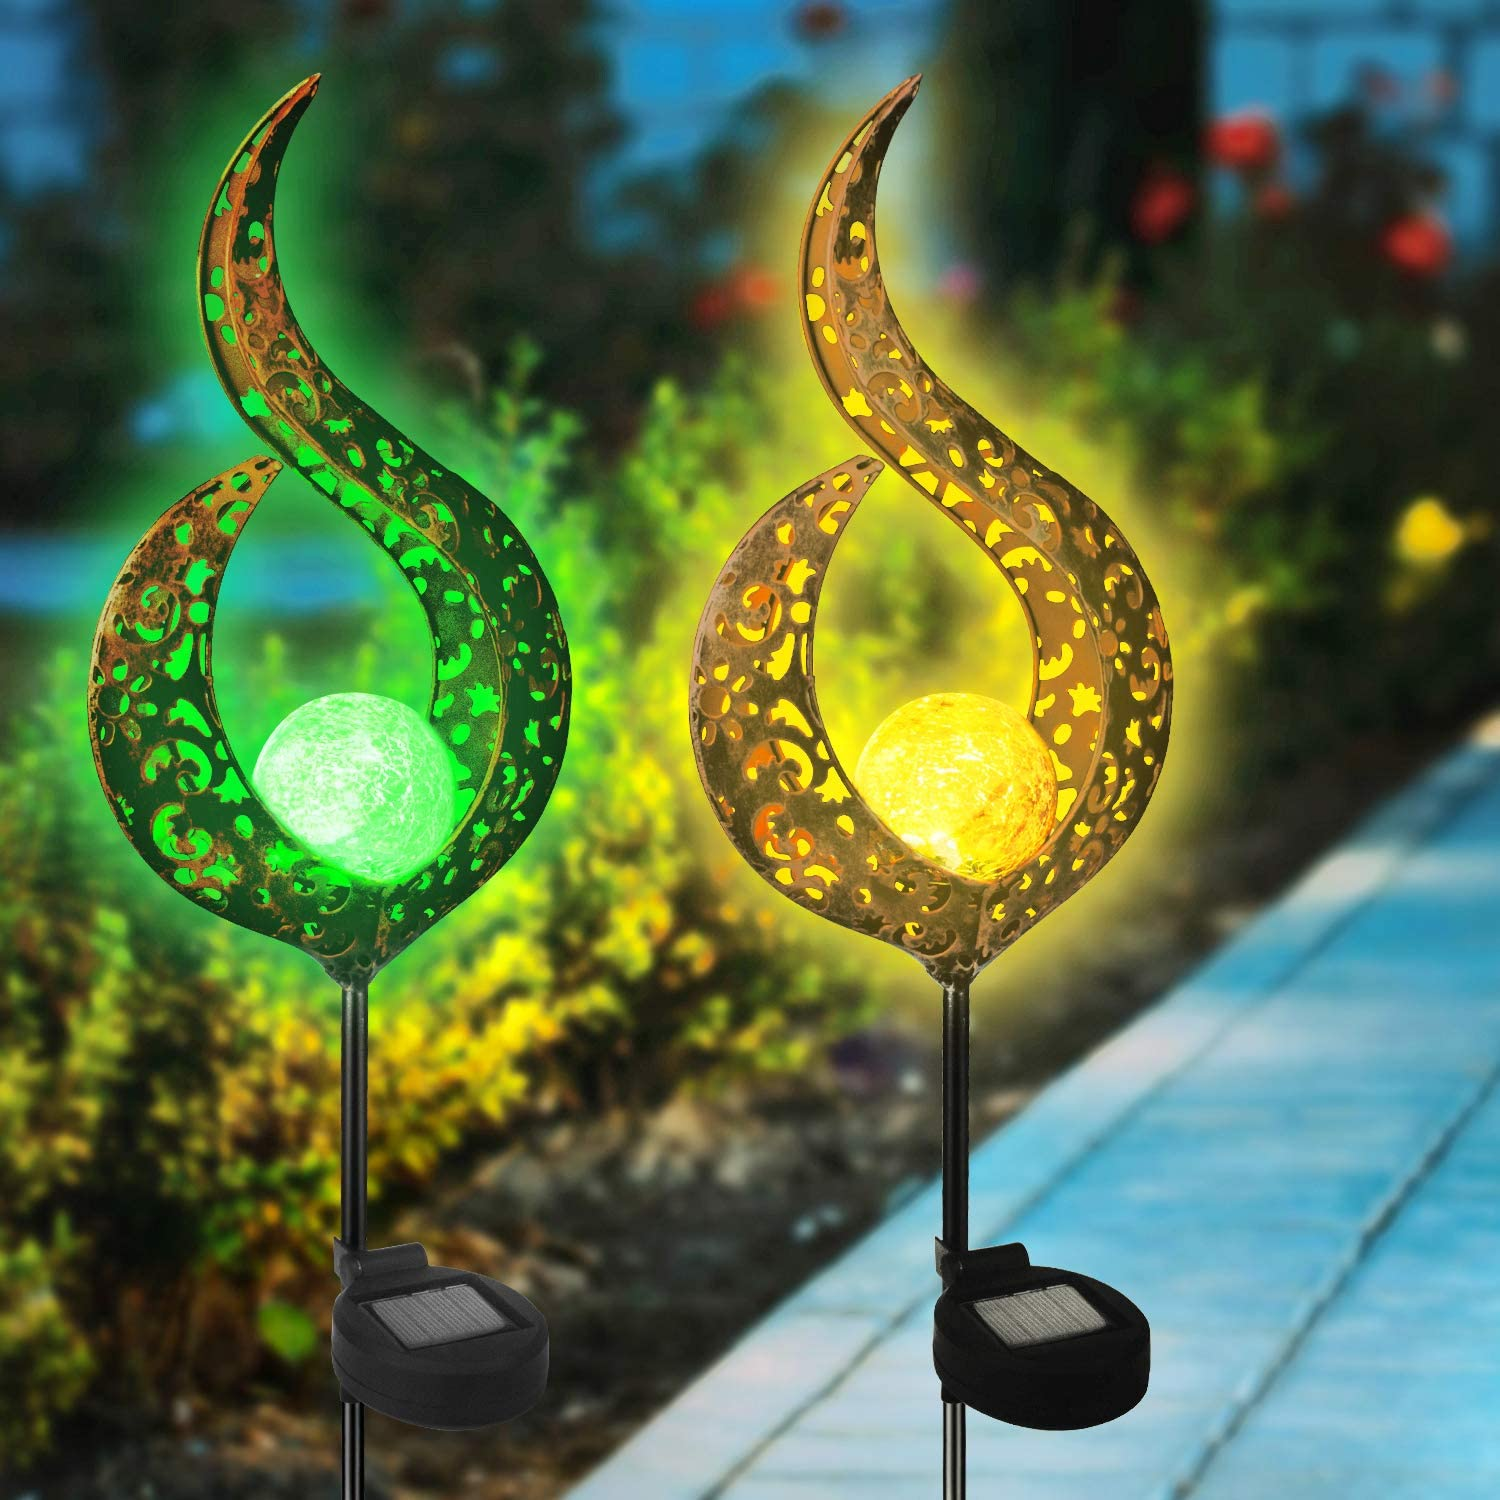 Beinhome 2 Pack Solar Garden Lights Crackle Glass Ball Metal Stake Waterproof Outdoor Decorative Lights Warm White for Patio, Yard, Lawn, Pathway